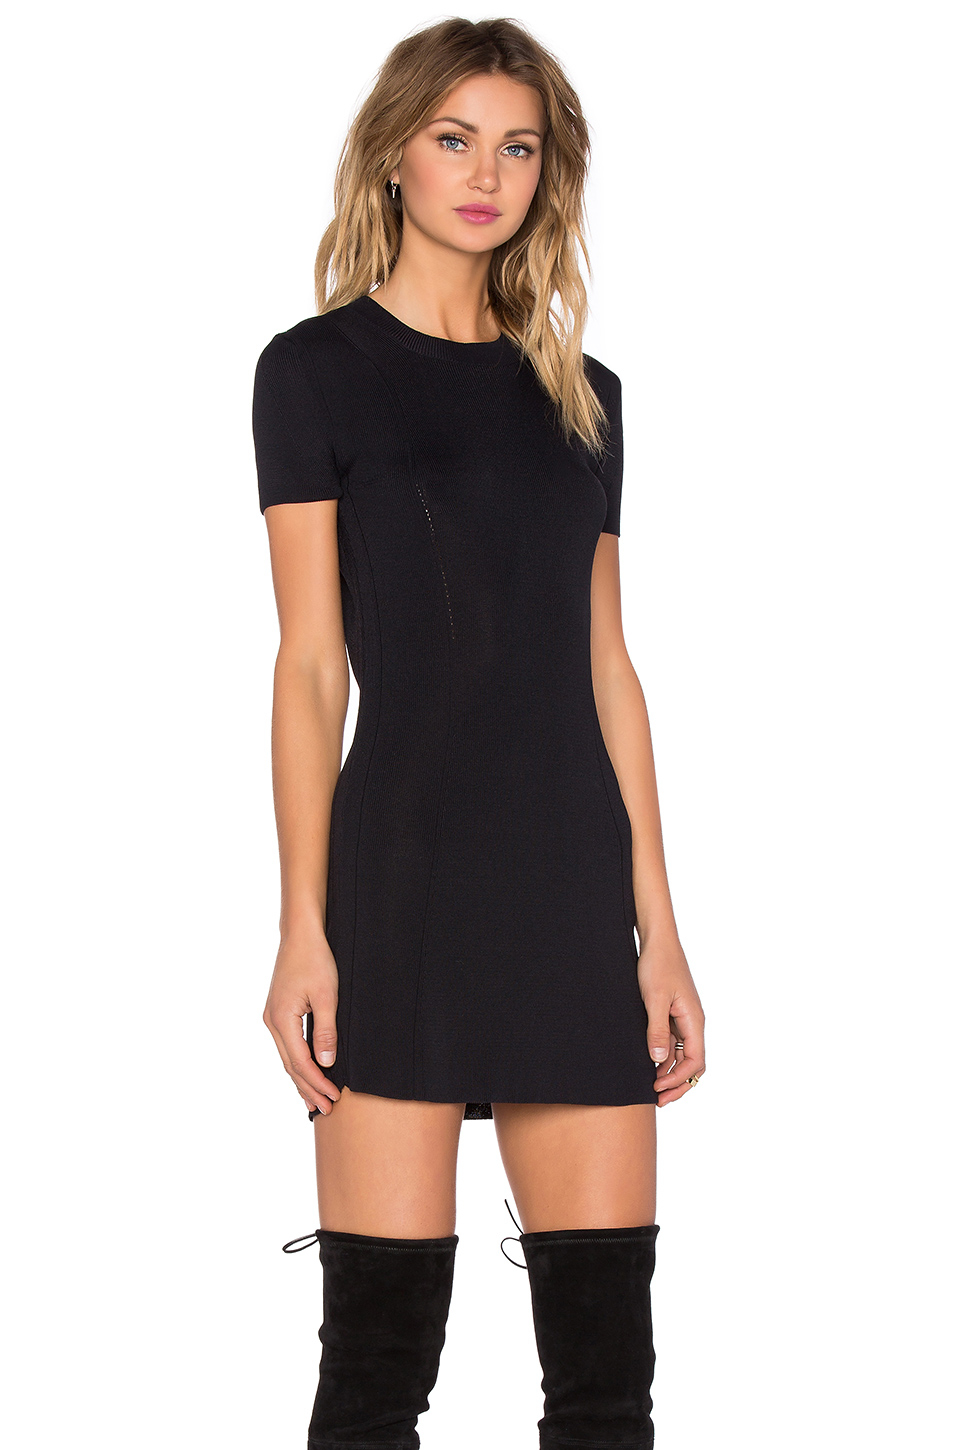 Osklen Short Sleeve Mini Dress in Black | Lyst